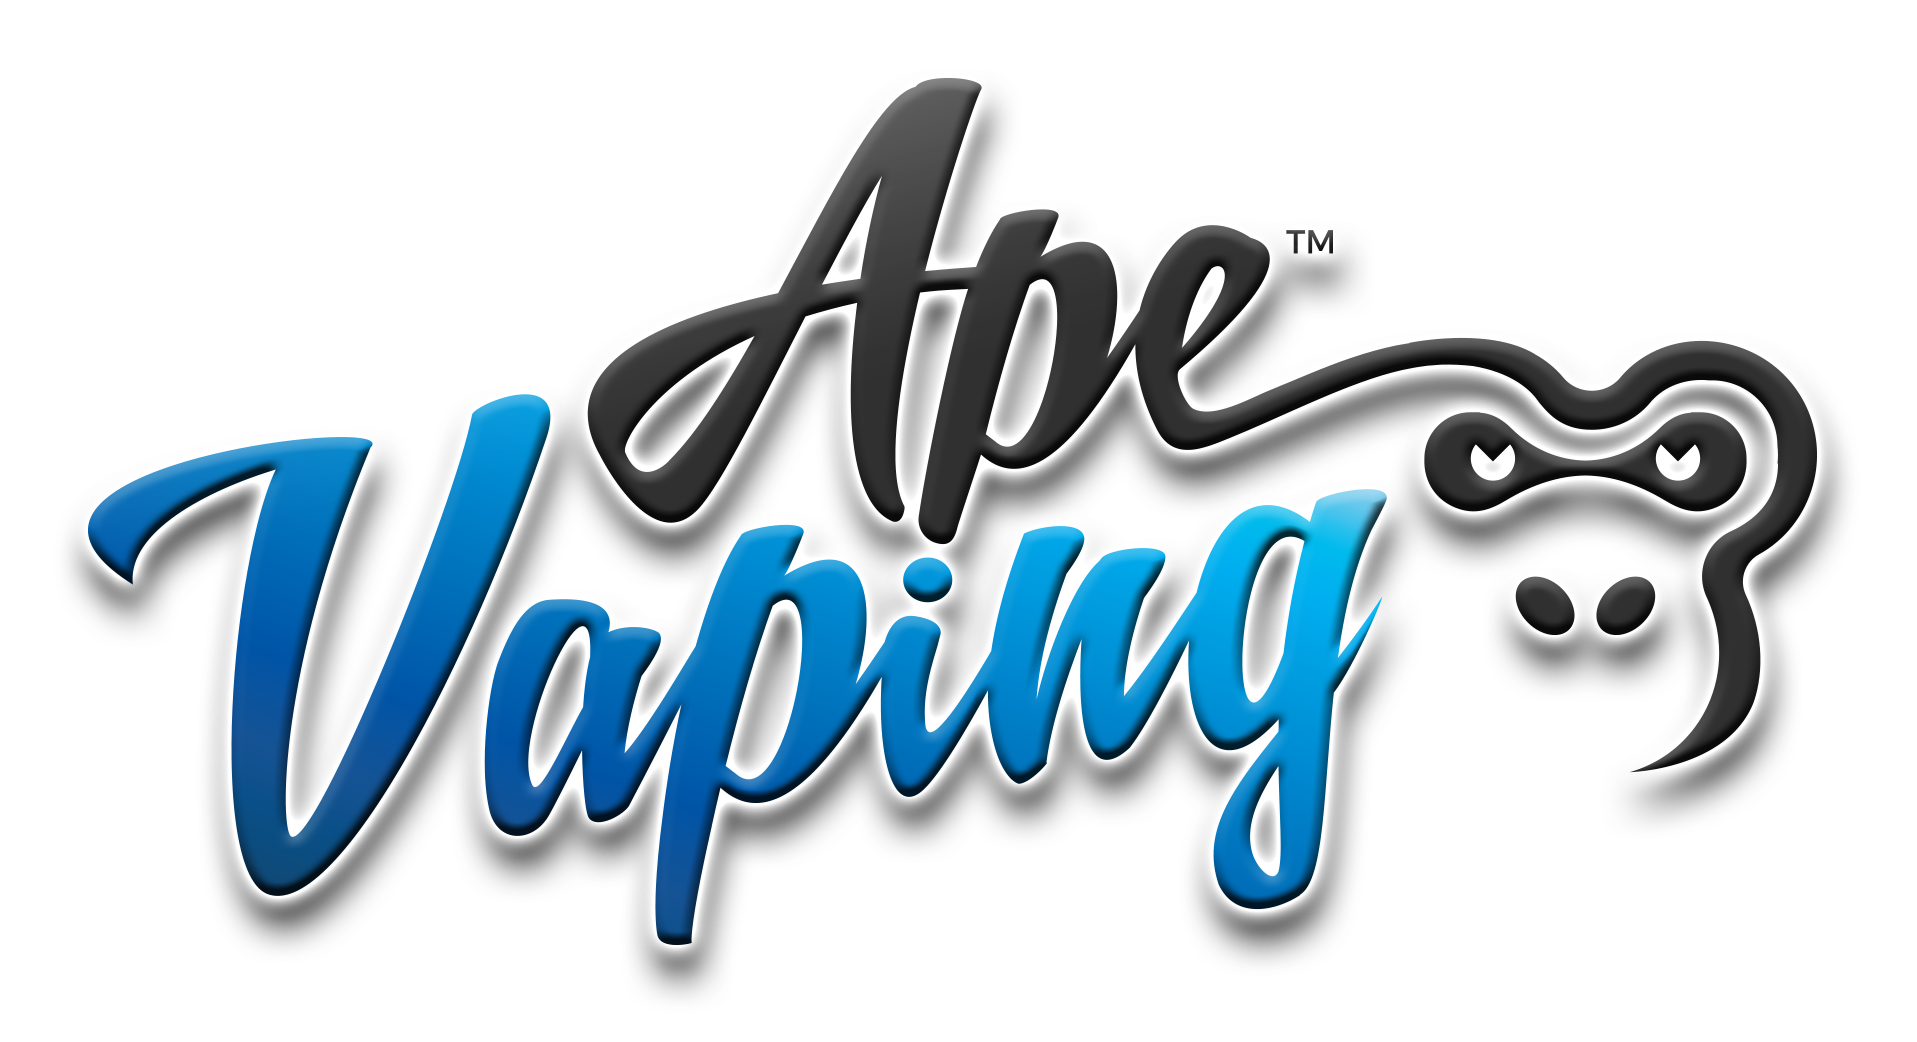 Ape Vaping Limited